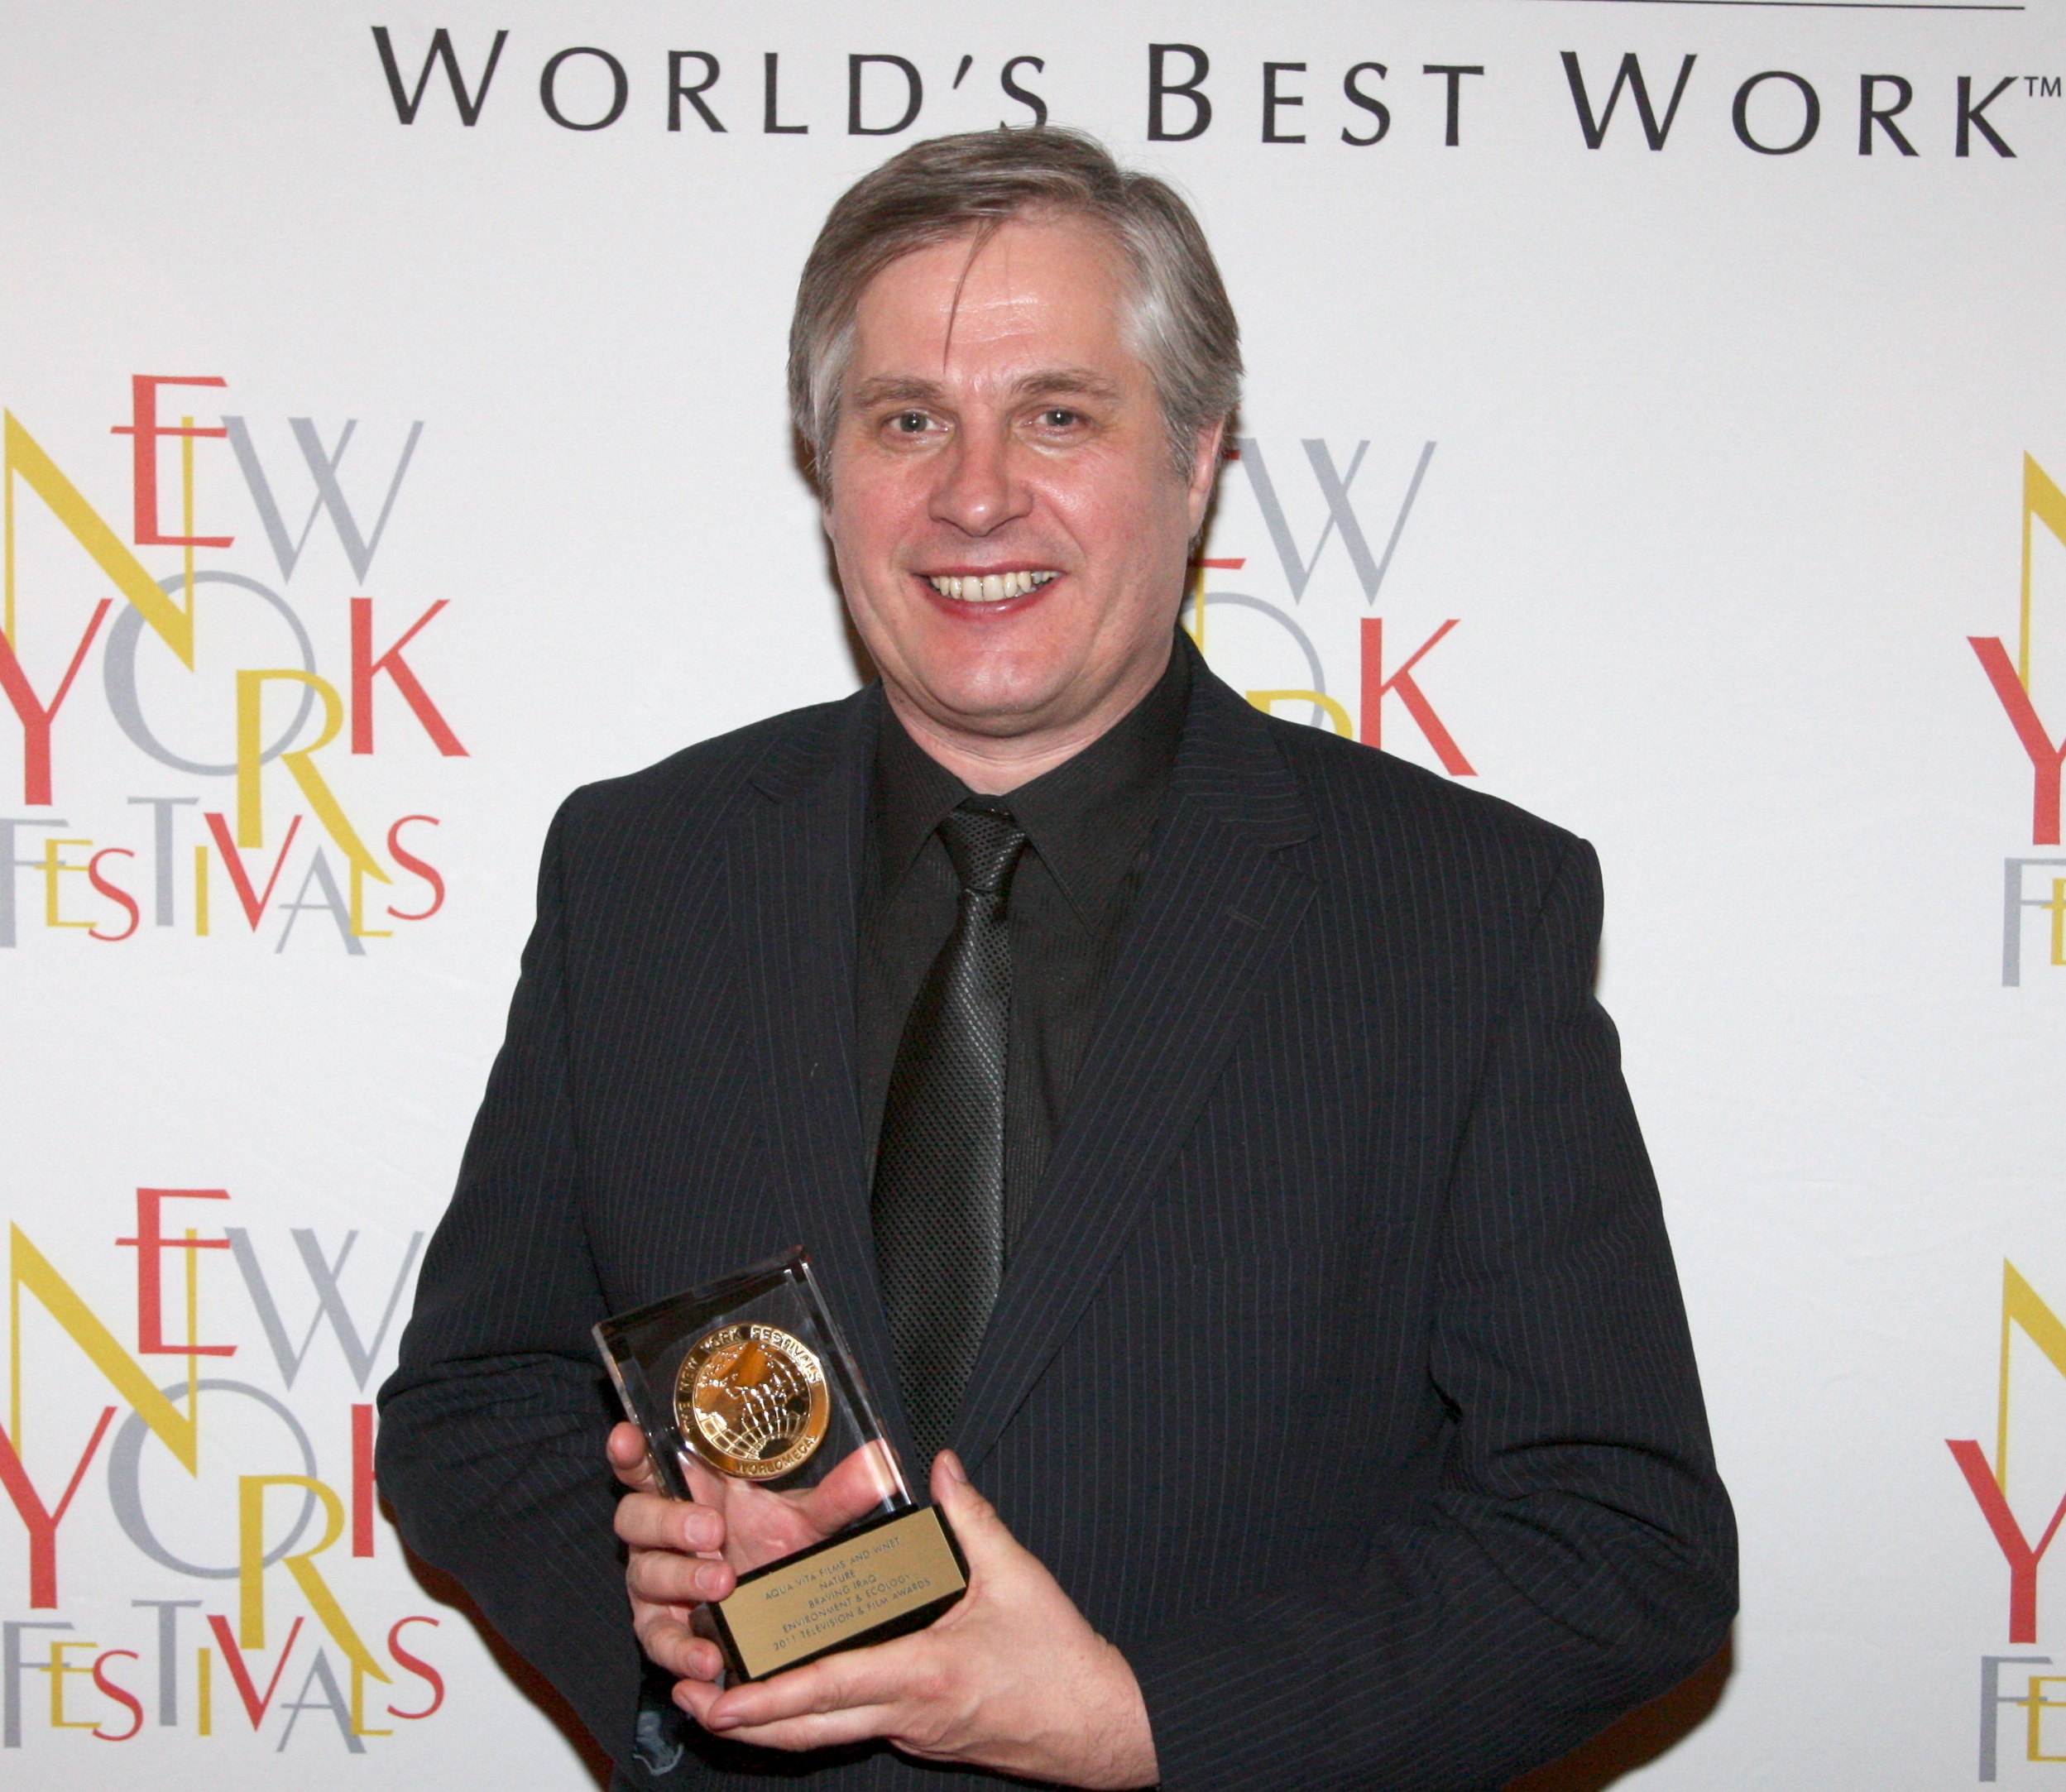 Bernard with NY award.jpg